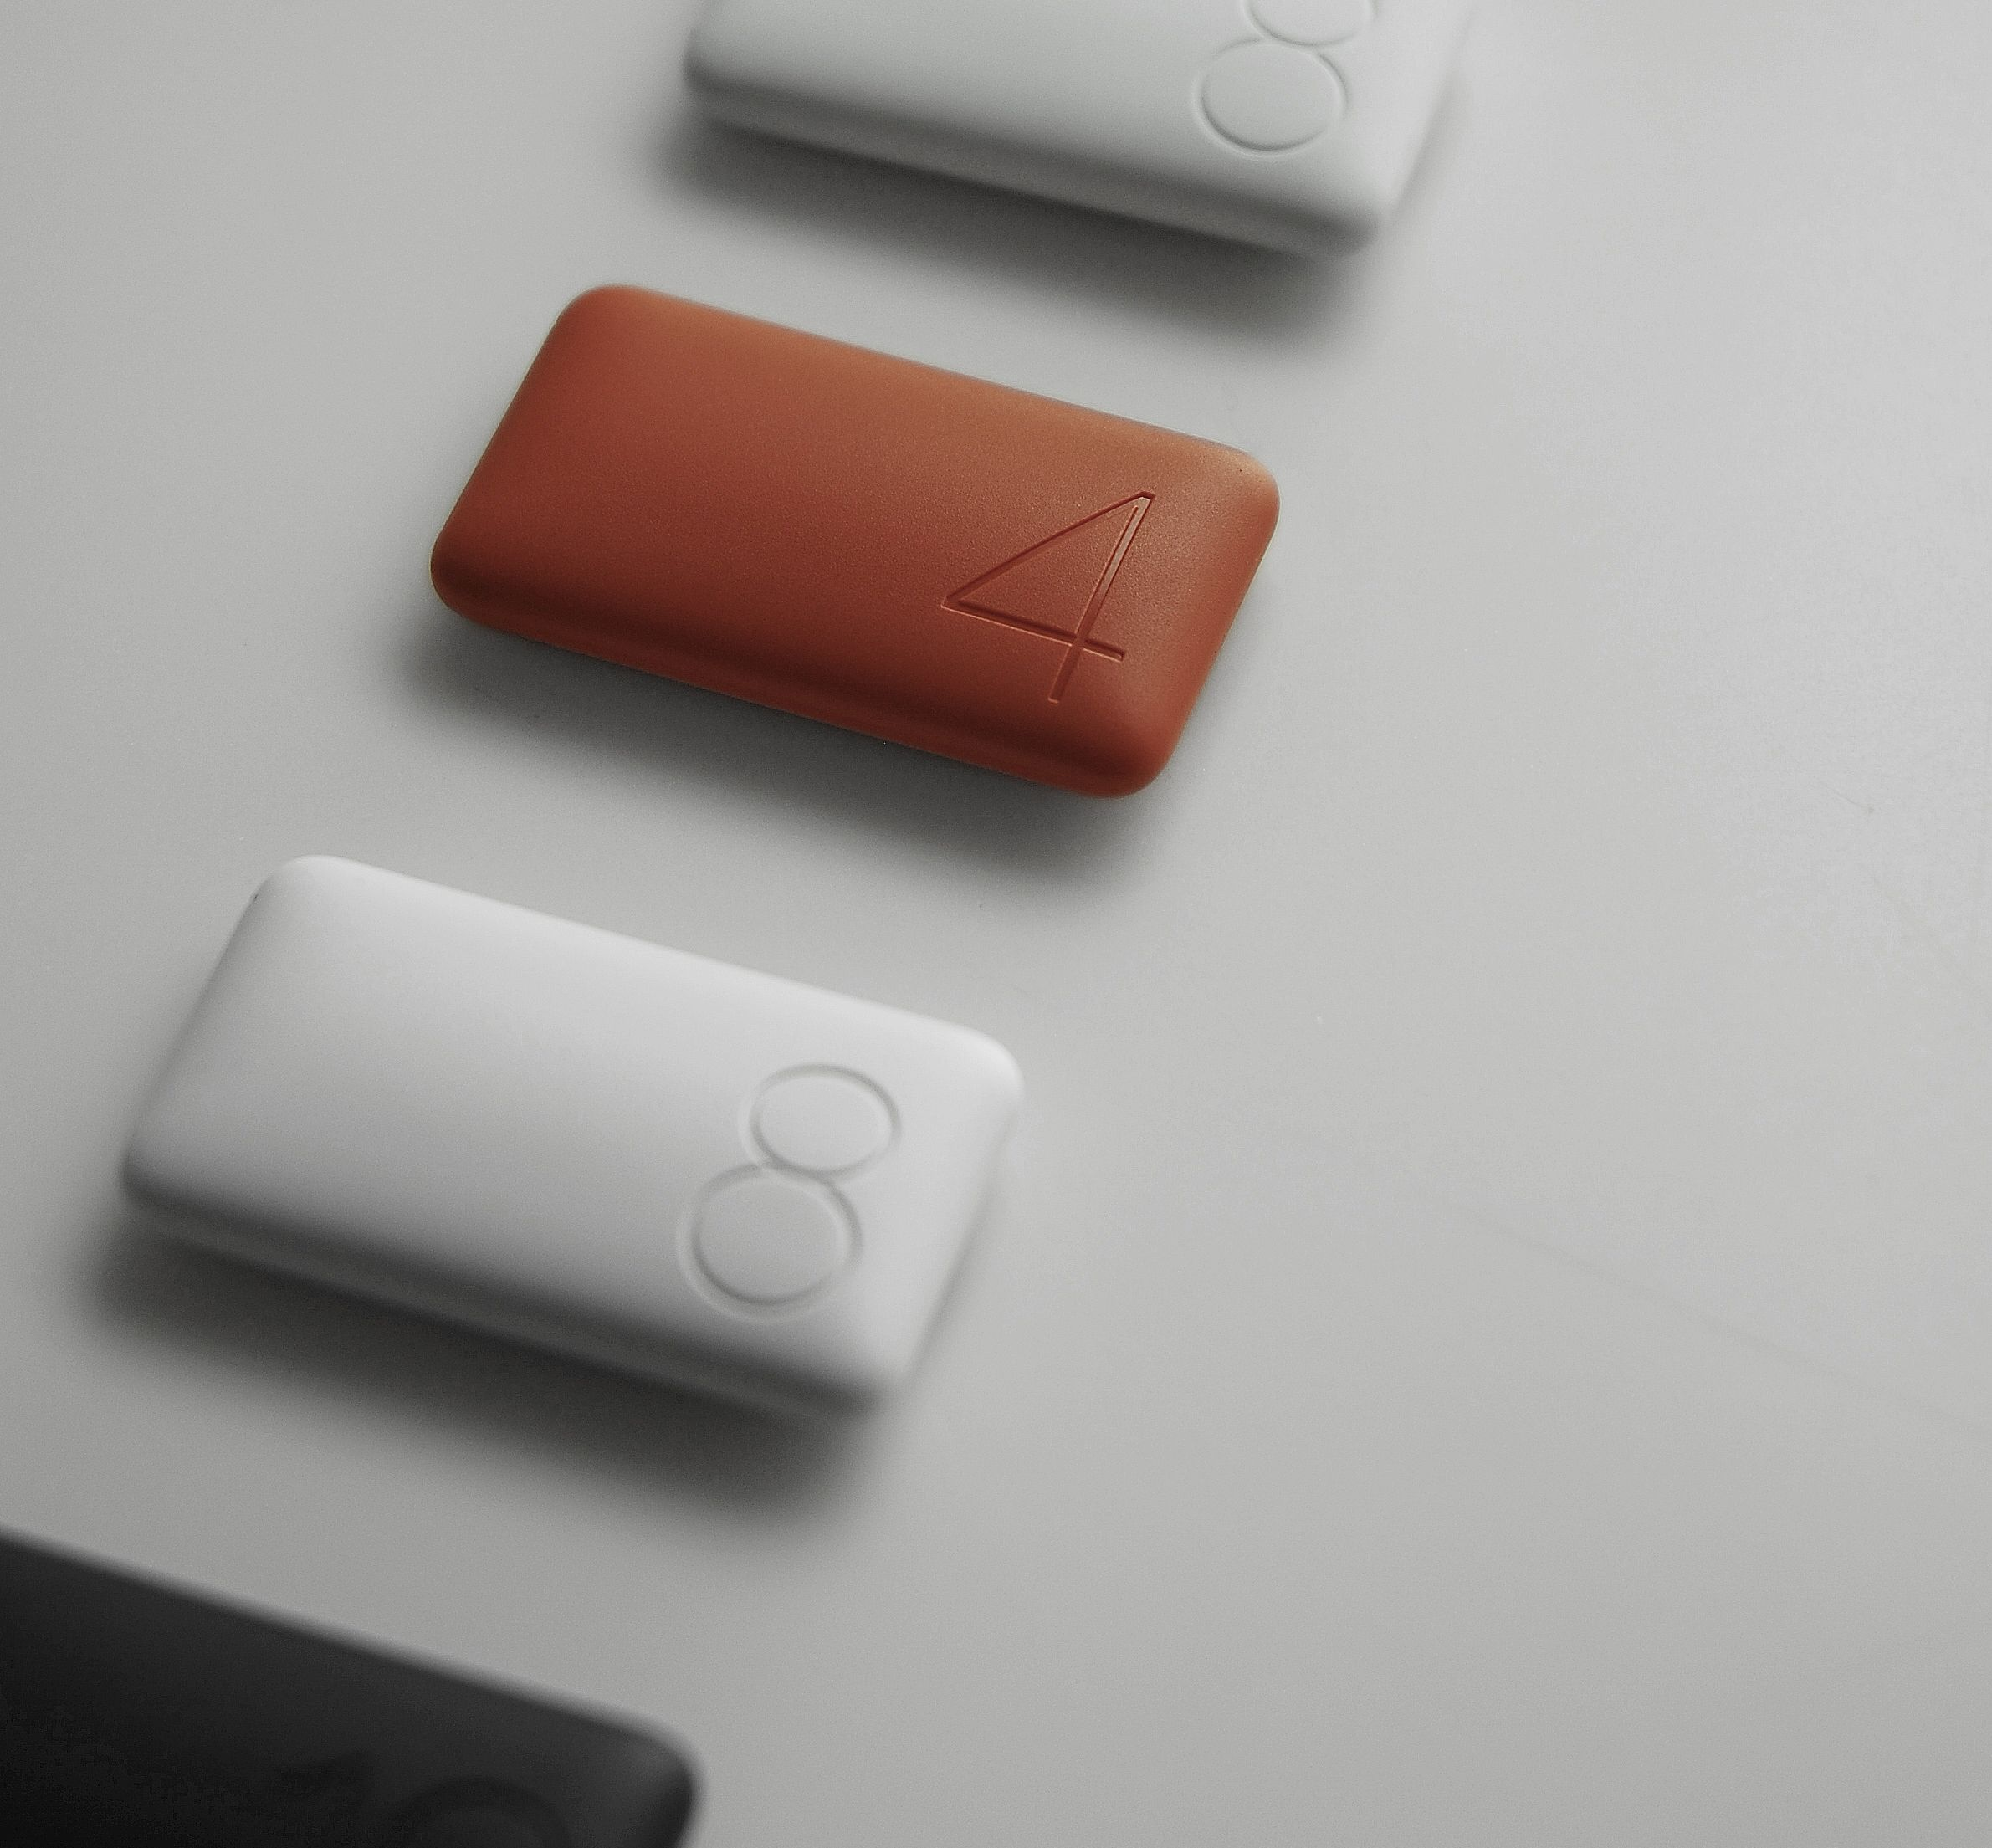 The Domino Inflate is the third generation USB memory stick.  by Yeong Kyu Yoo, Soo Jin Choi, Se Min Jun / Recognized with the iF product design award 2010 - gold